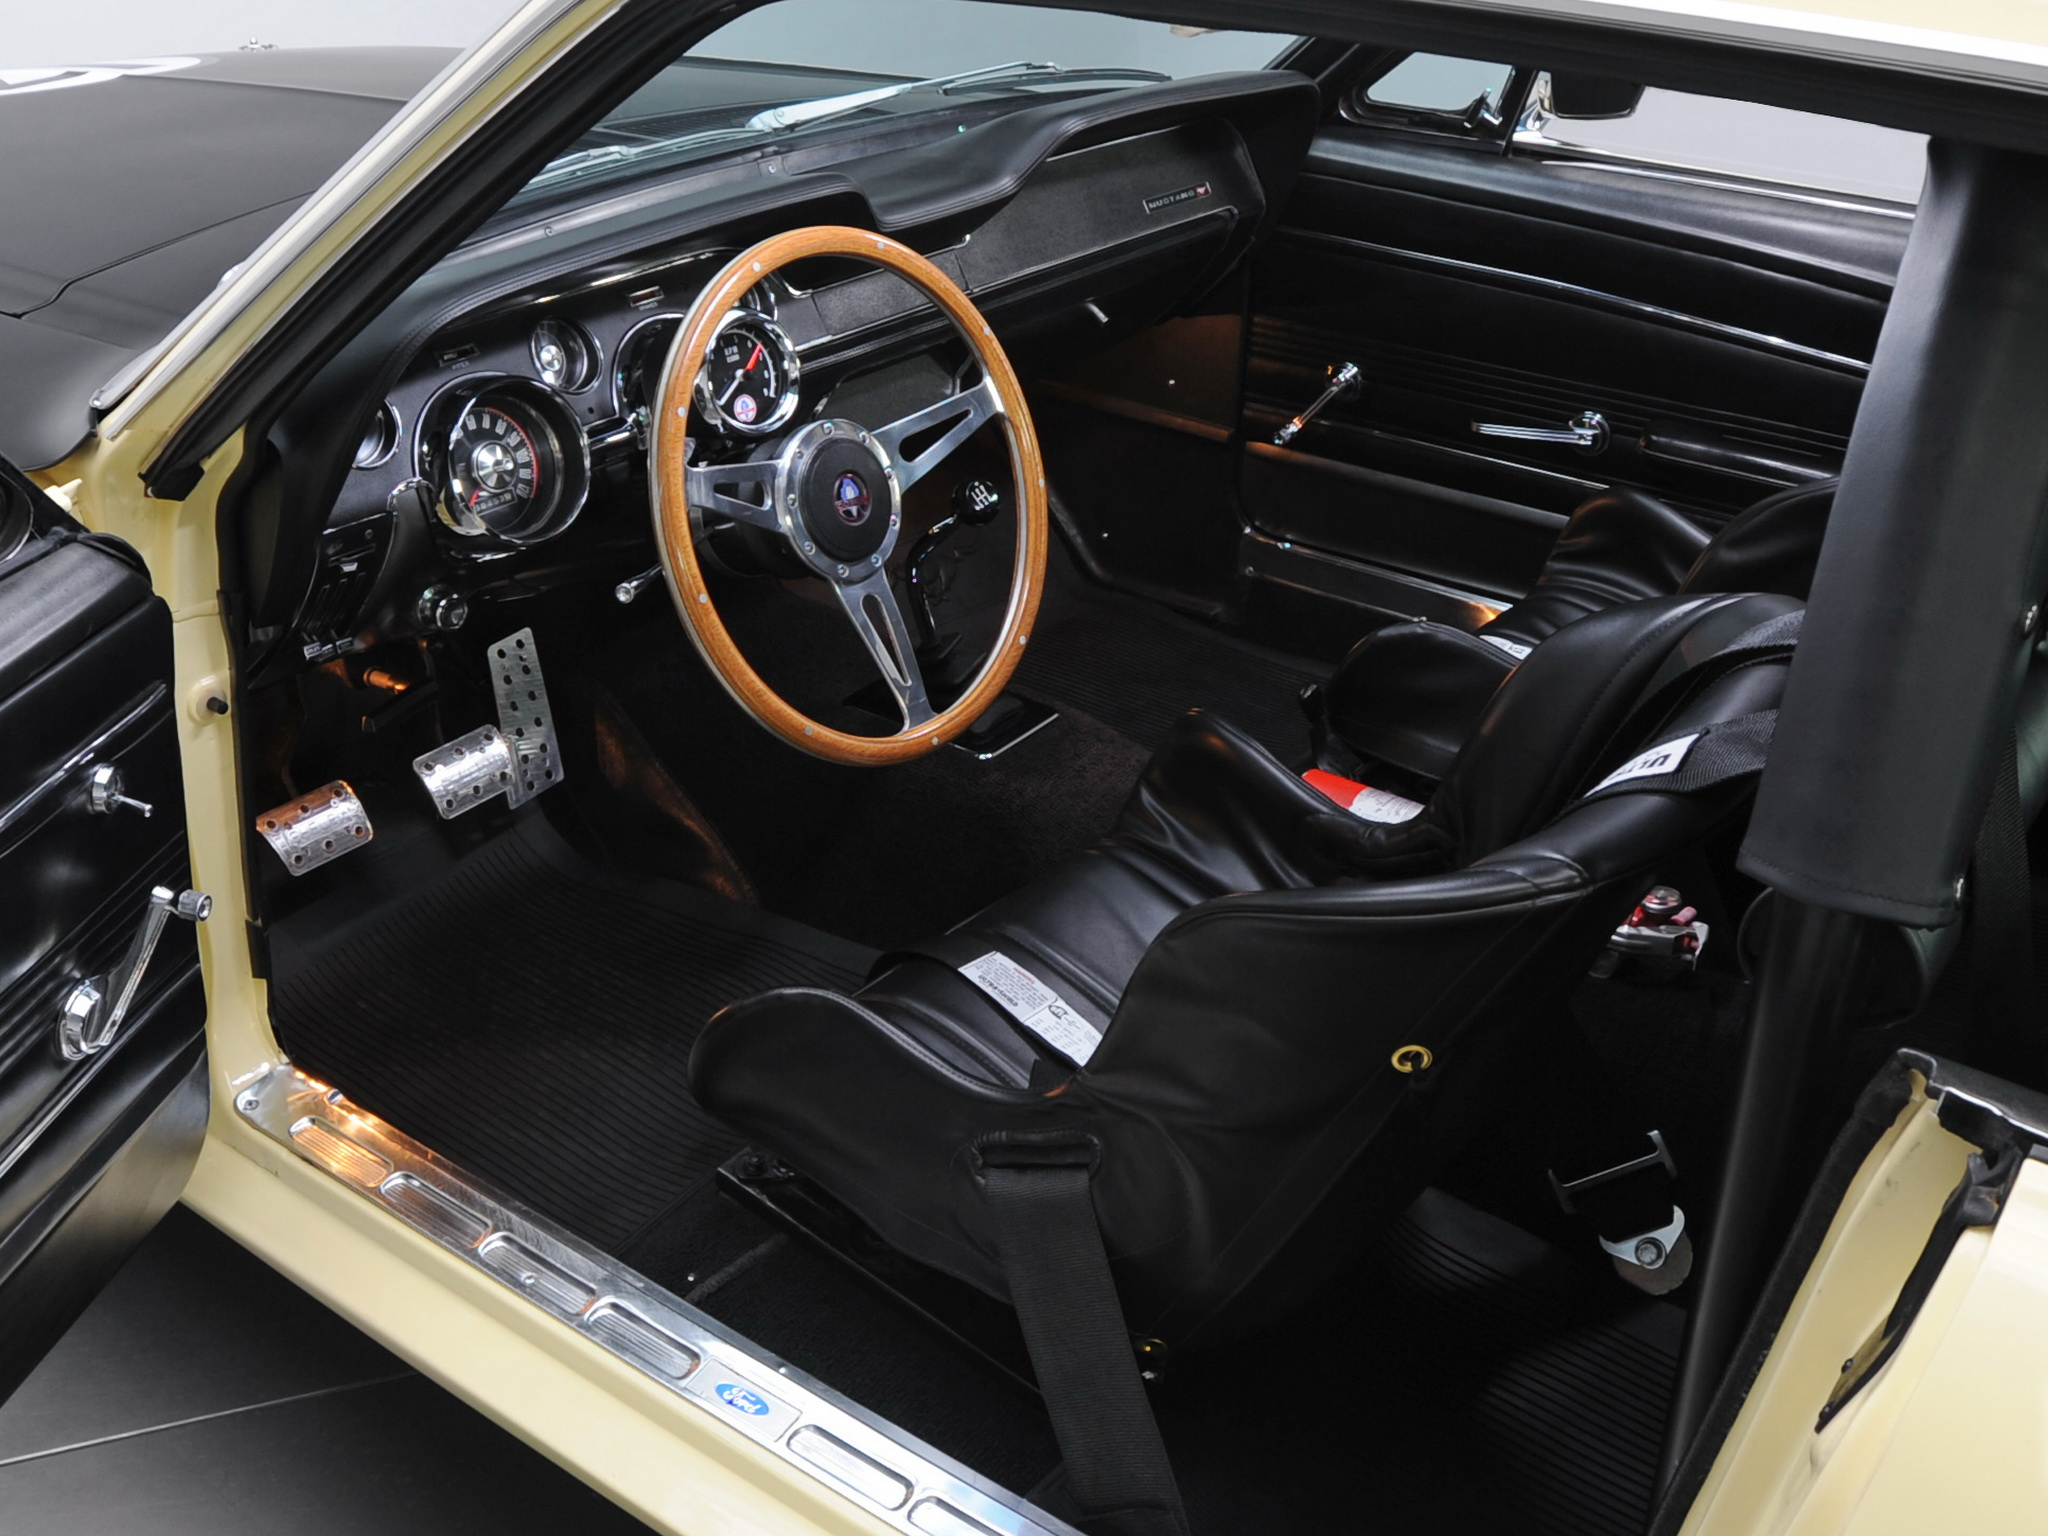 1967 Ford Mustang Coupe Race Car 65b Racing Muscle Classic Interior H Wallpaper 2048x1536